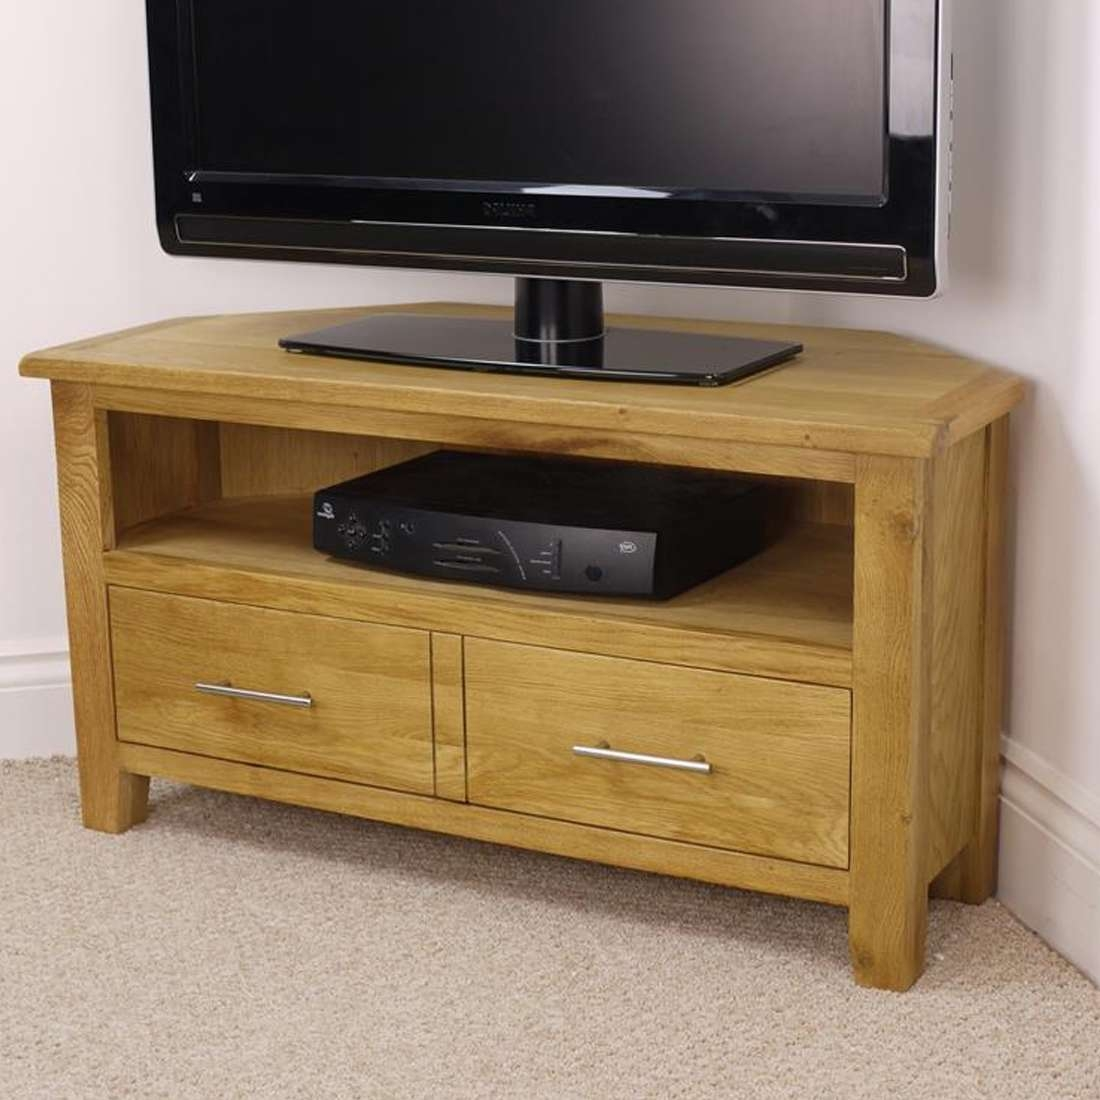 Nebraska Modern Oak Corner Tv Unit / Solid Wood Tv Stand / Oiled Pertaining To Real Wood Corner Tv Stands (View 7 of 15)